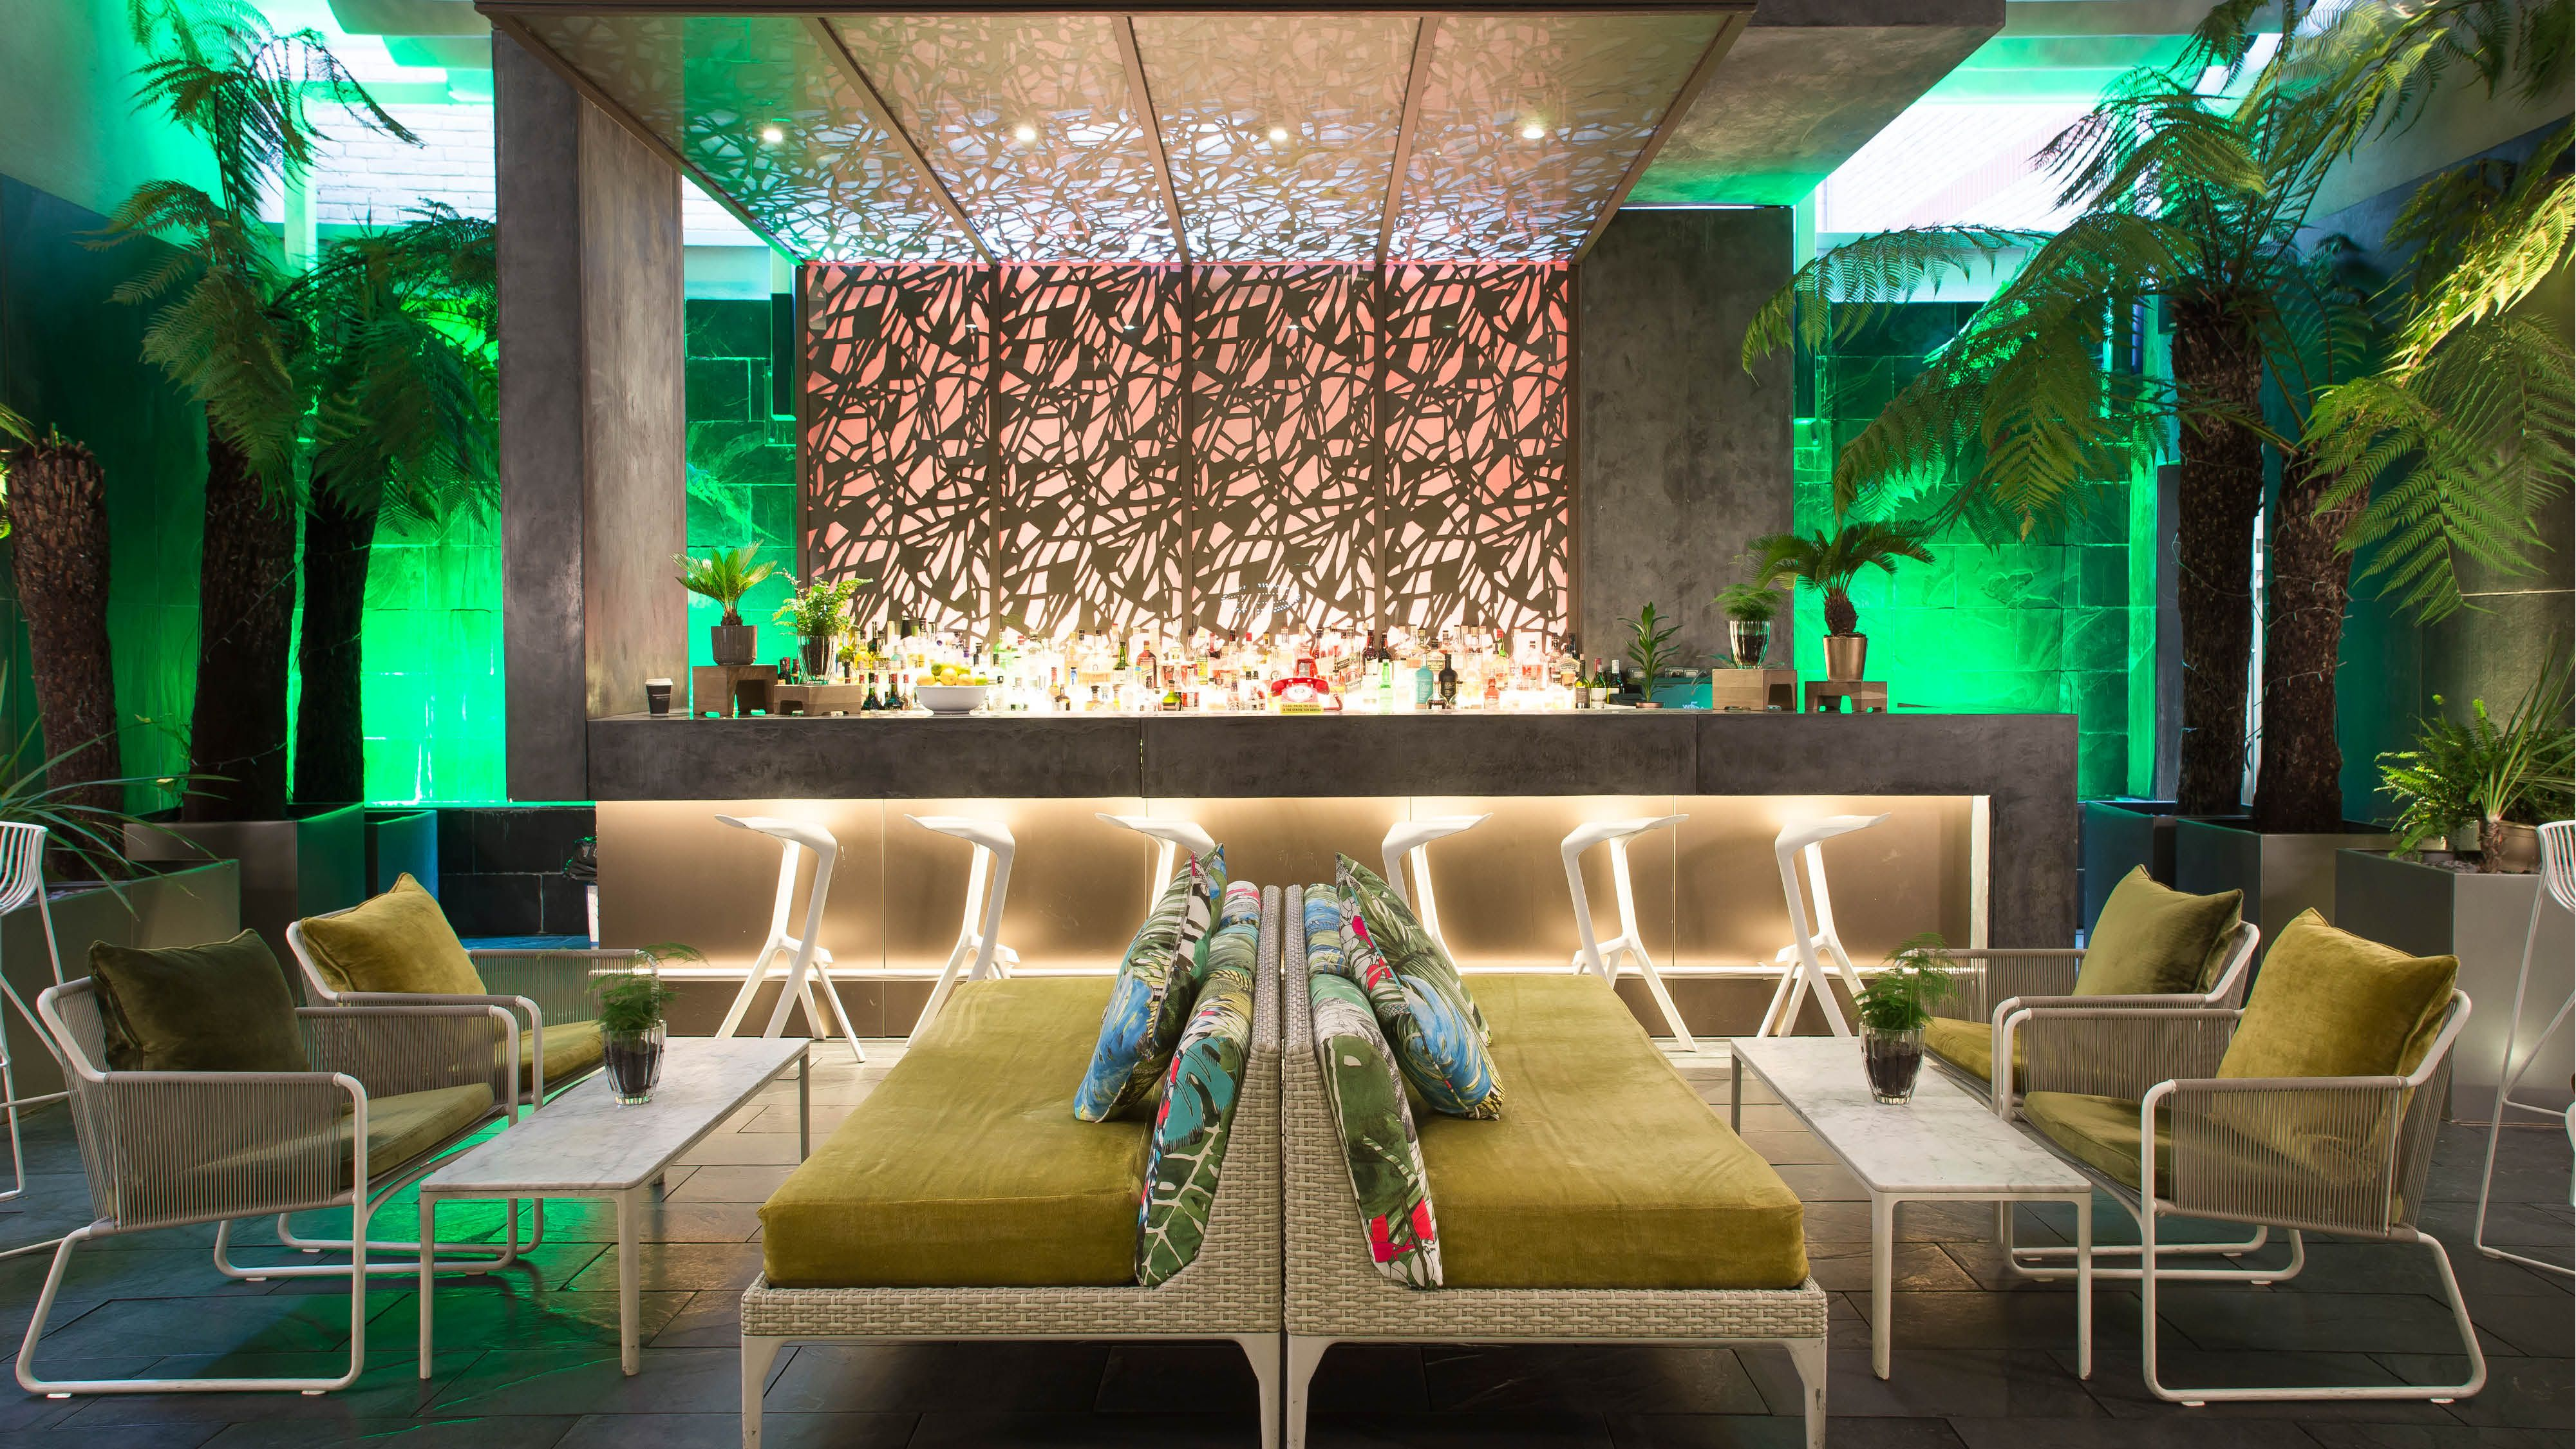 South Place Hotel. Our Secret Garden is a tropical outside bar with ...